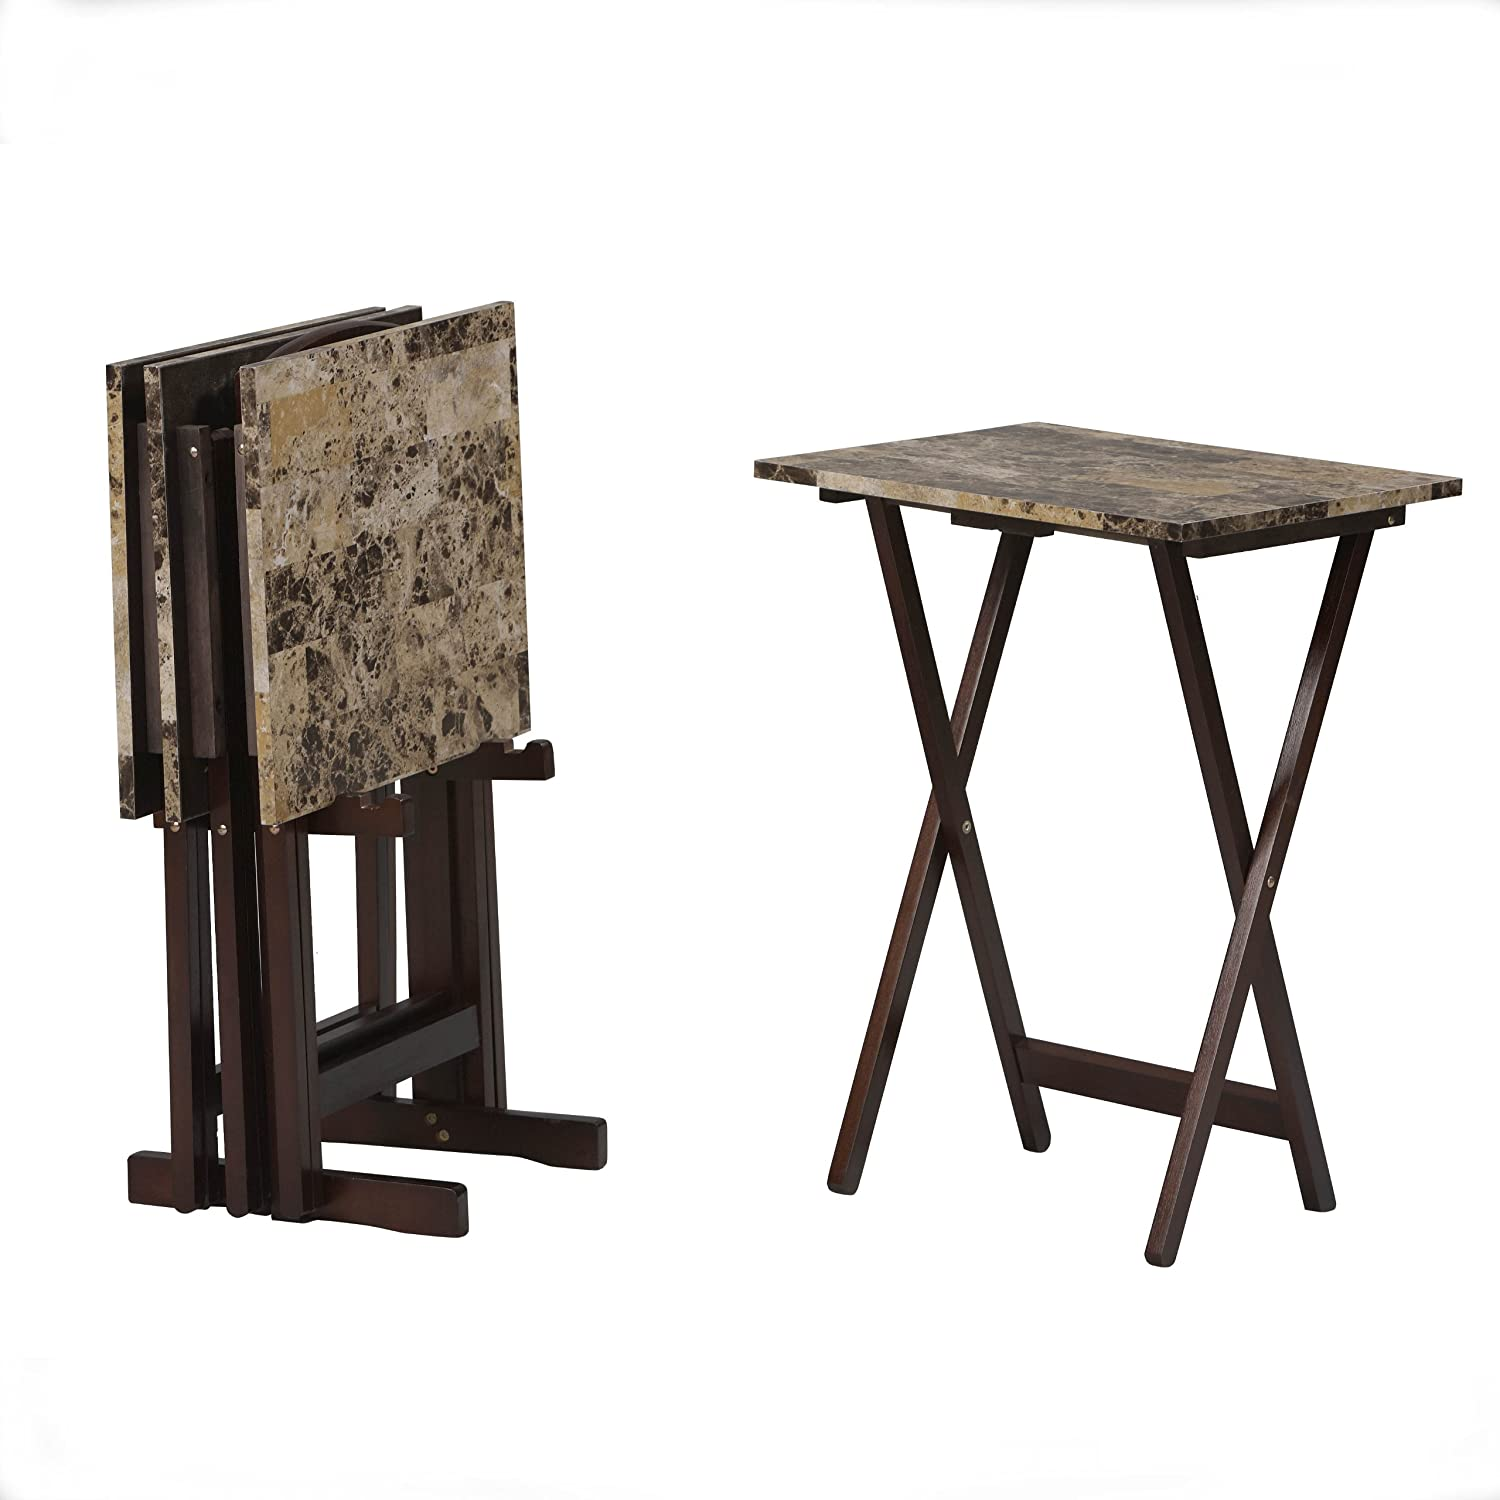 Amazon.com Linon Home Decor Tray Table Set Faux Marble Brown Kitchen \u0026 Dining  sc 1 st  Amazon.com : set of tray tables - pezcame.com